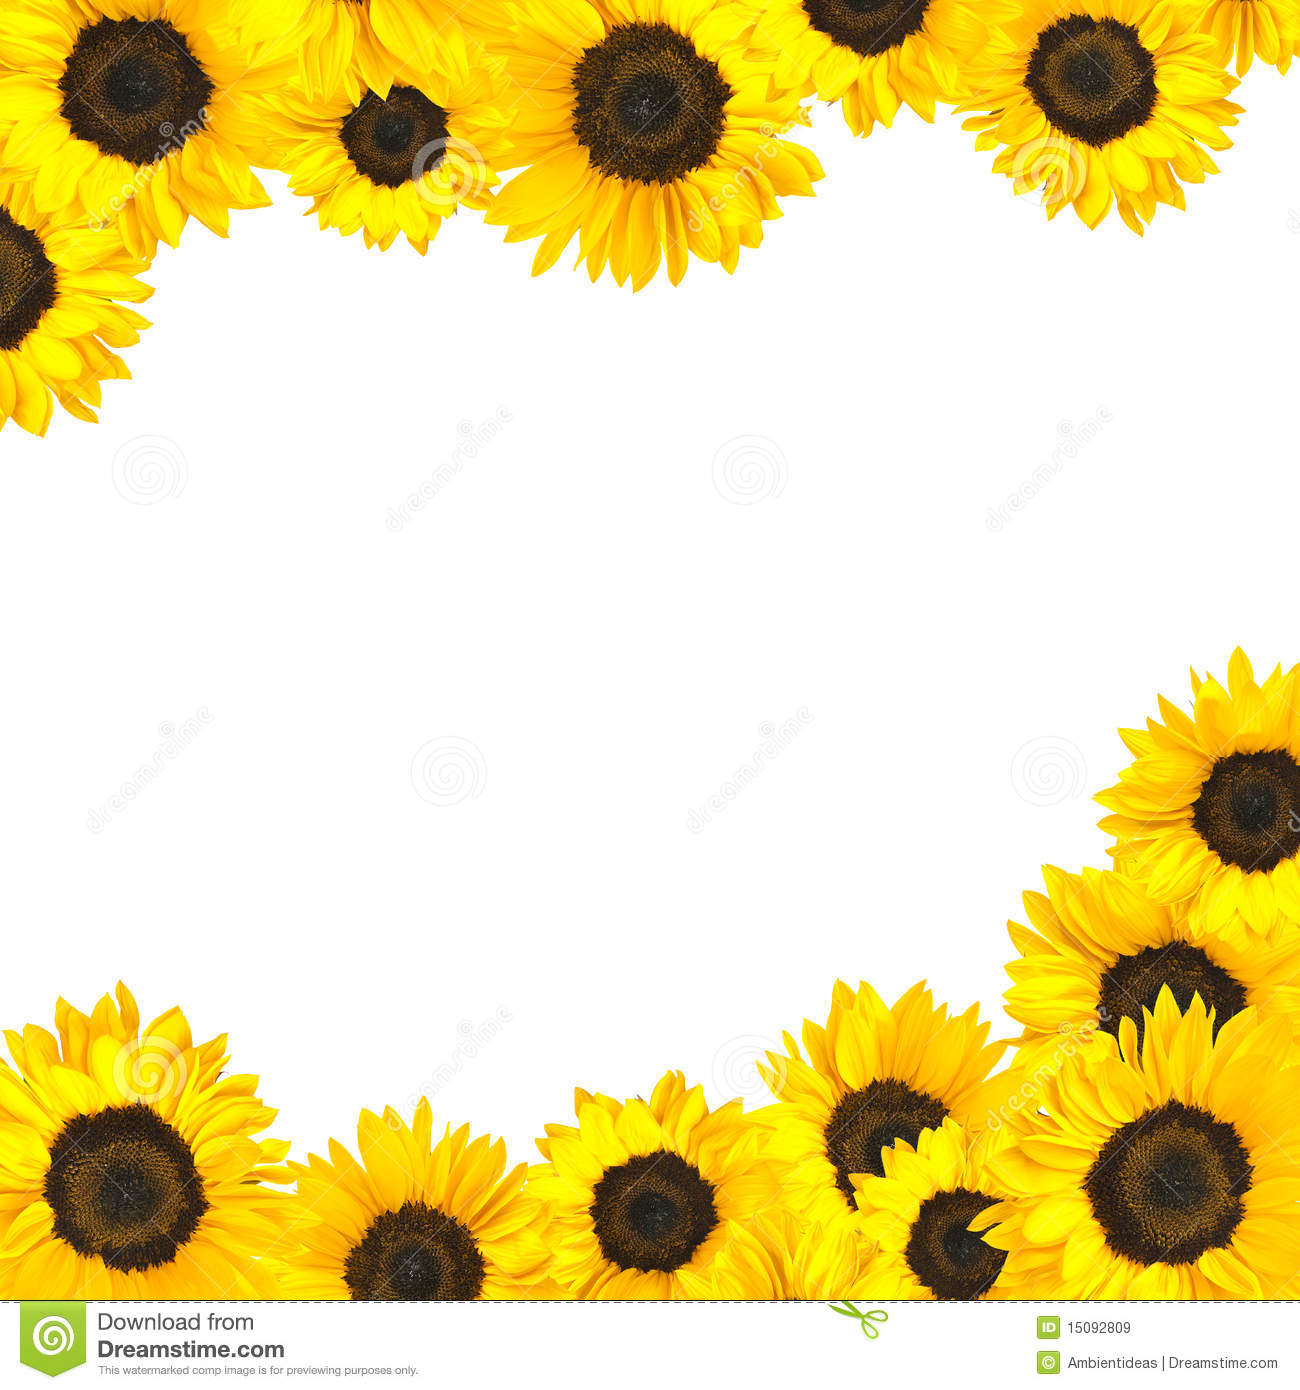 Sunflowers Clipart Border Sunflower border isolated on